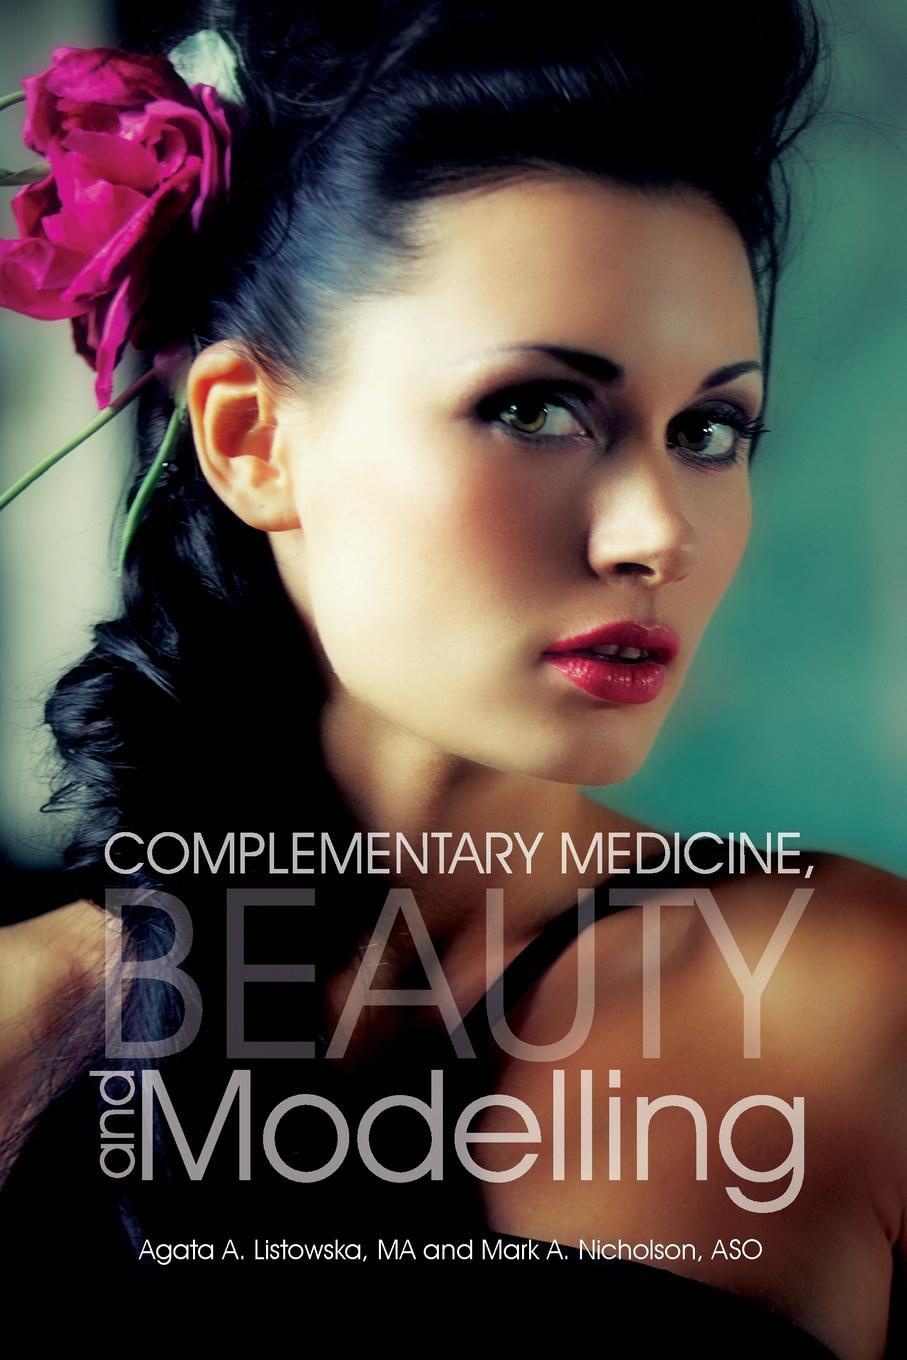 AGATA A. LISTOWSKA MA, MARK A. NICHOLSON ASO Complementary Medicine, Beauty and Modelling janet richardson abc of complementary medicine